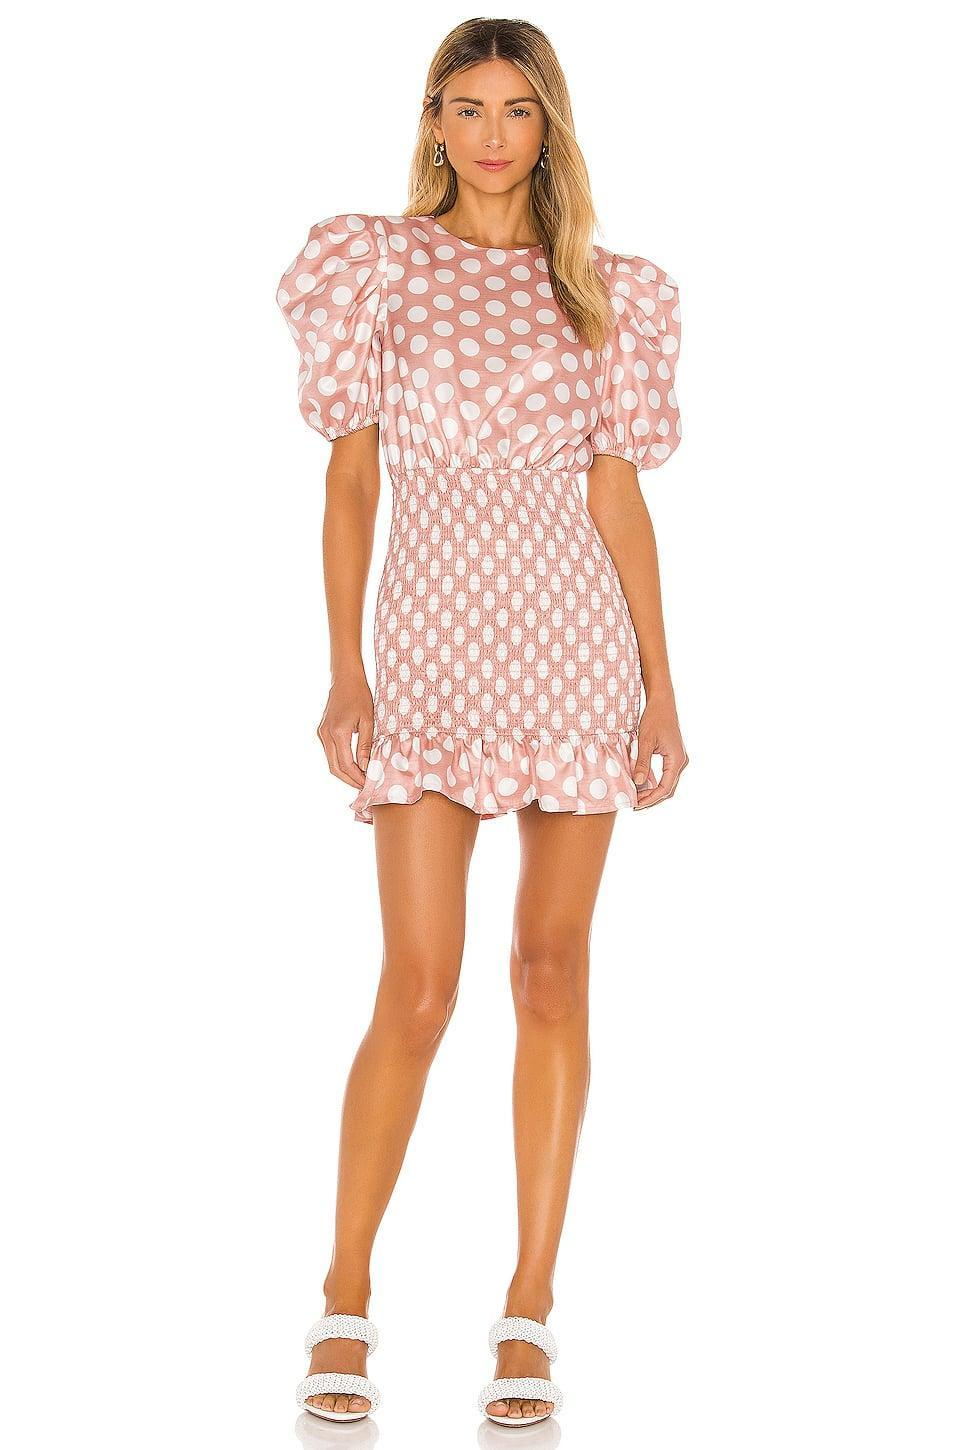 <p>The <span>Camila Coelho Florentino Mini Dress</span> ($218) is a sweet blend of feminine and flirty.</p>